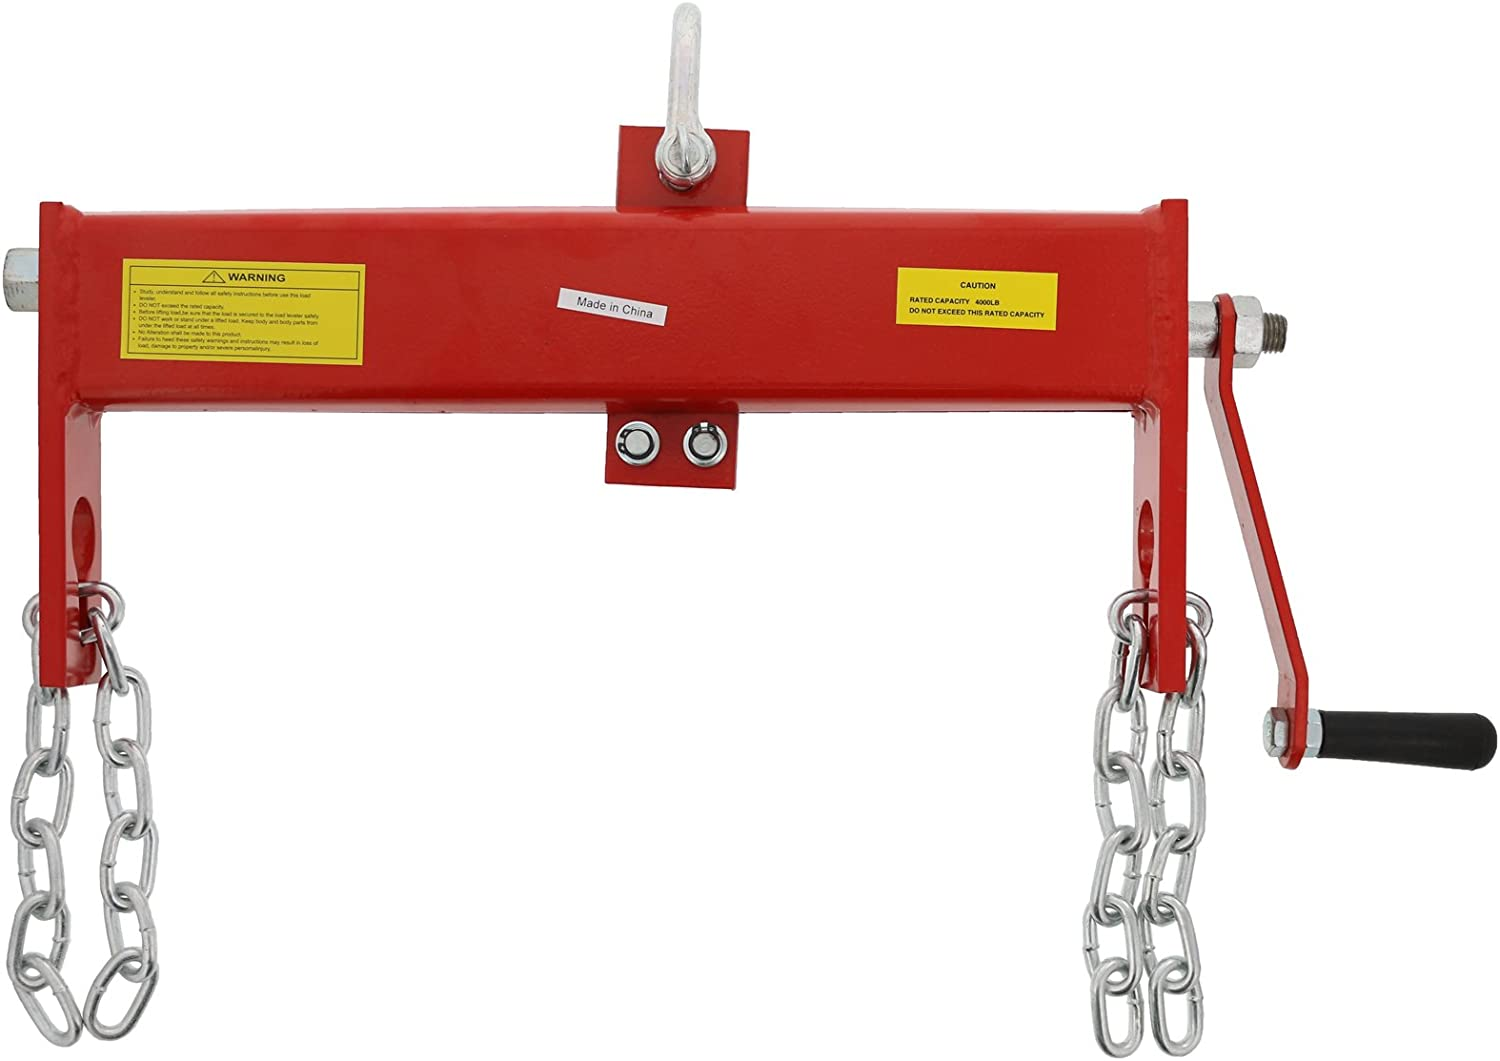 Engine Leveller for Shop Crane Winch Hoist Lifter hfghsgjbgd 2000lbs Car Engine Load Leveller Adjustable Professional Crane Hoist Lift Load Leveller with Handle